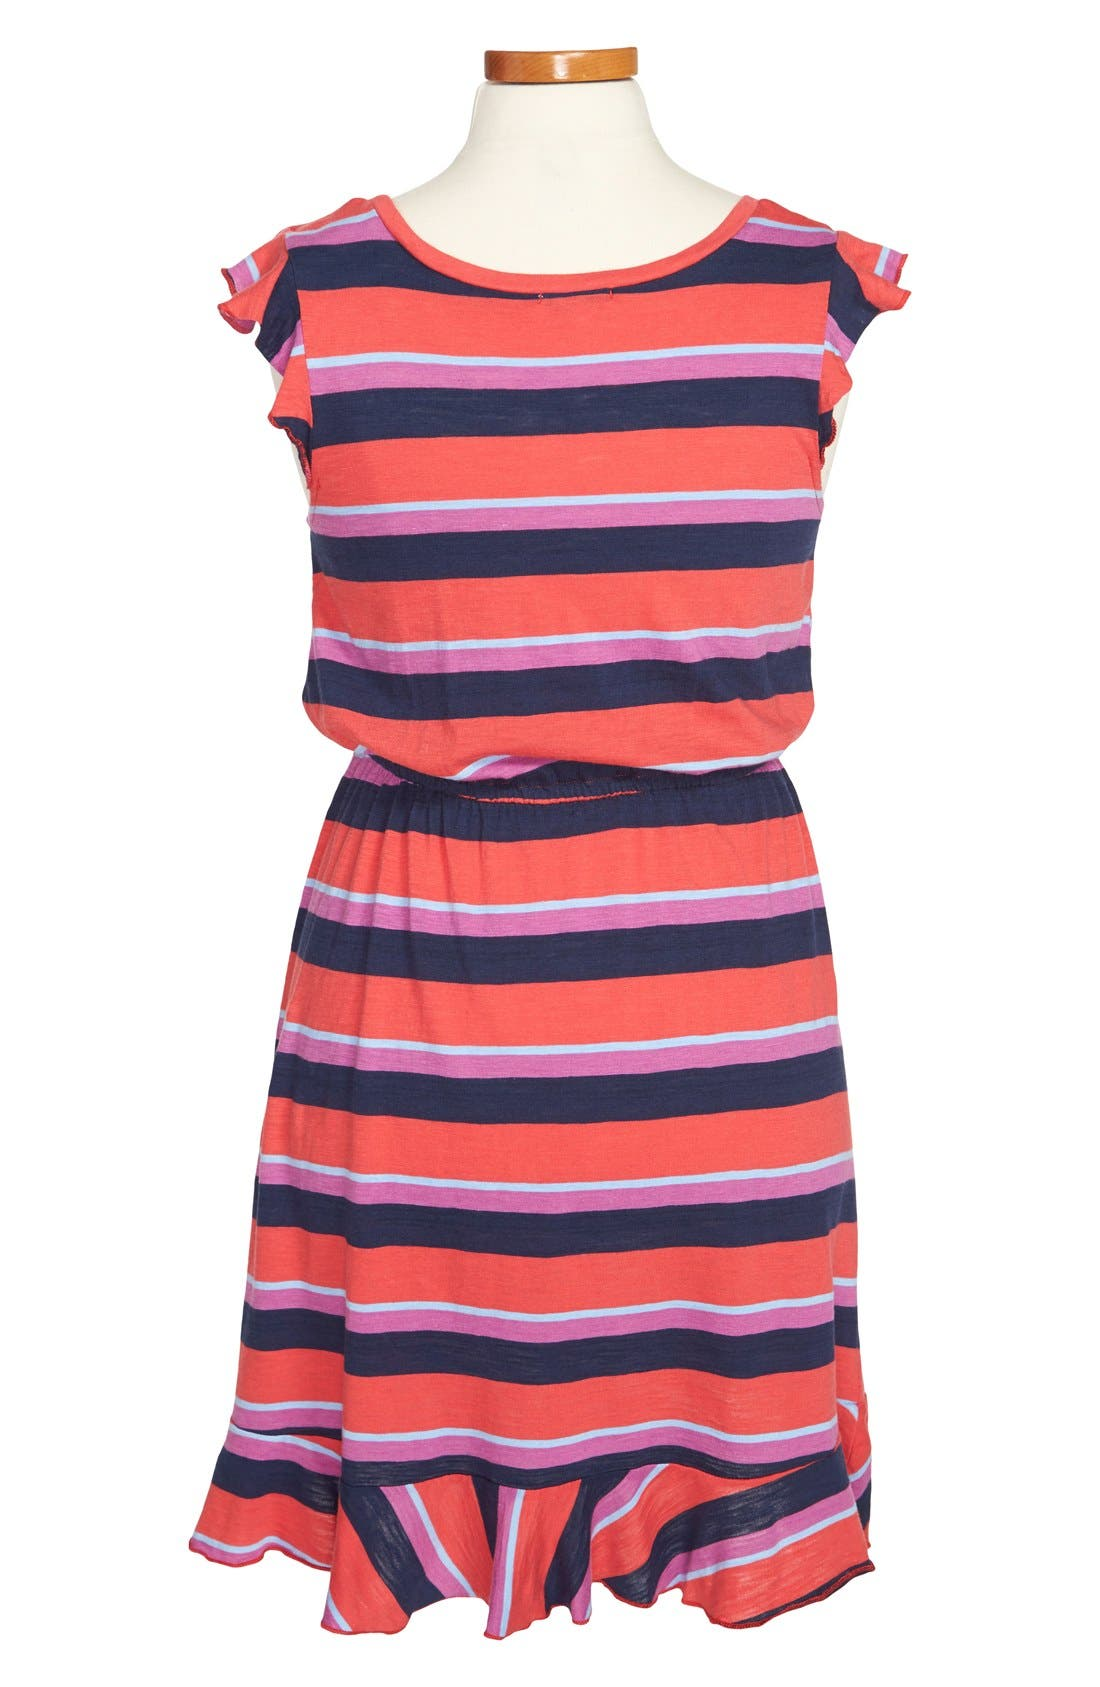 Alternate Image 2  - Splendid 'Wow' Stripe Flutter Sleeve Dress (Big Girls)